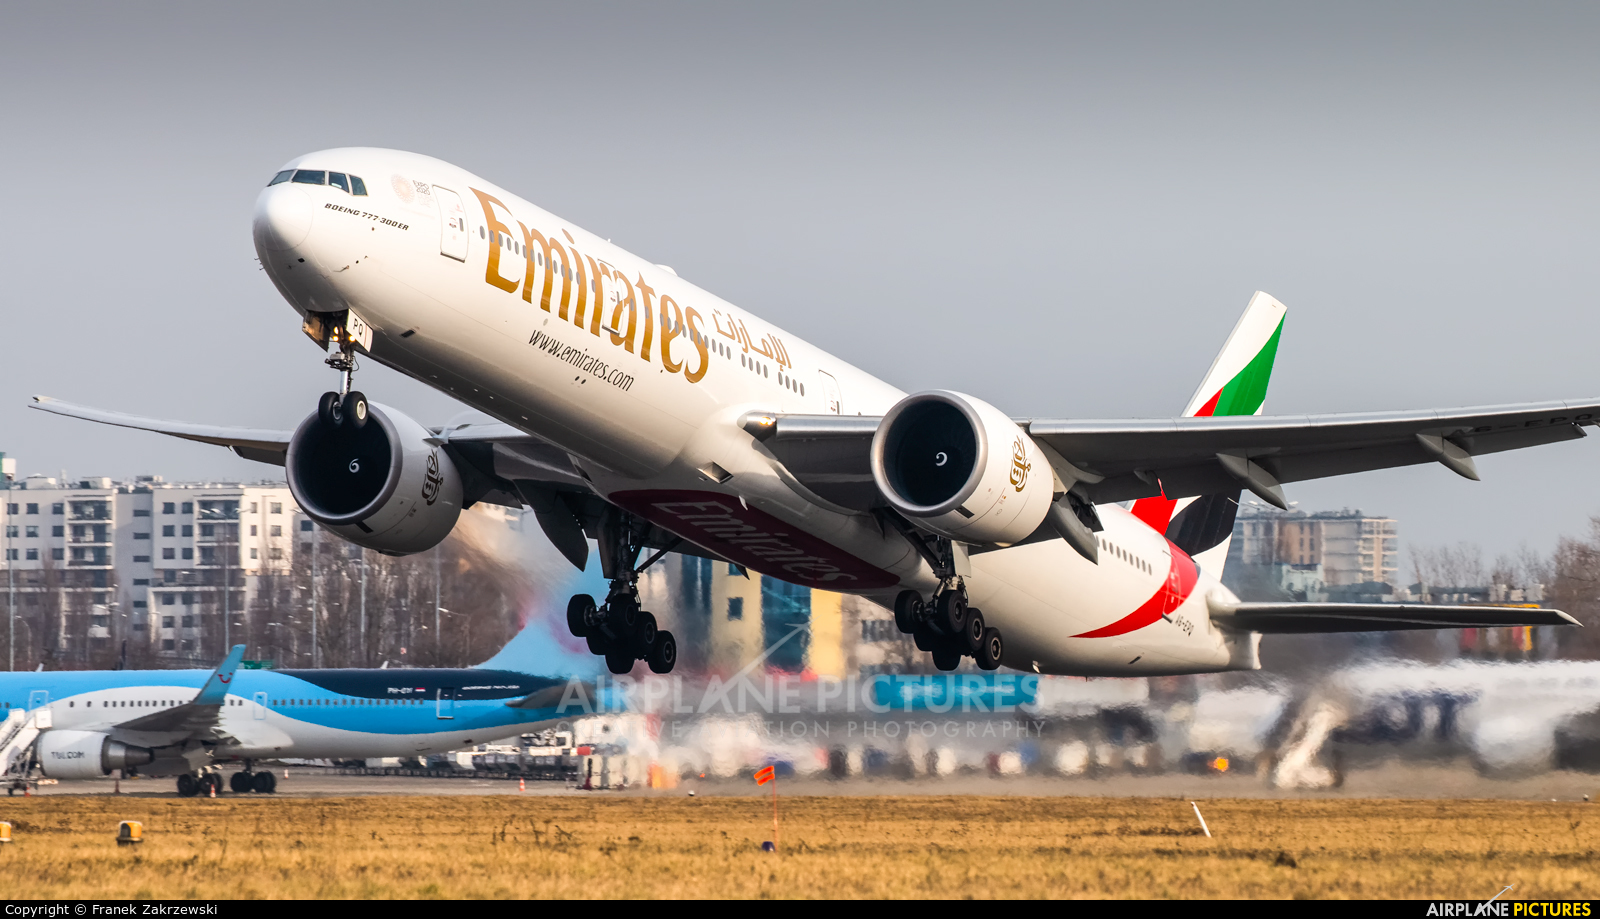 Emirates Airlines A6-EPQ aircraft at Warsaw - Frederic Chopin